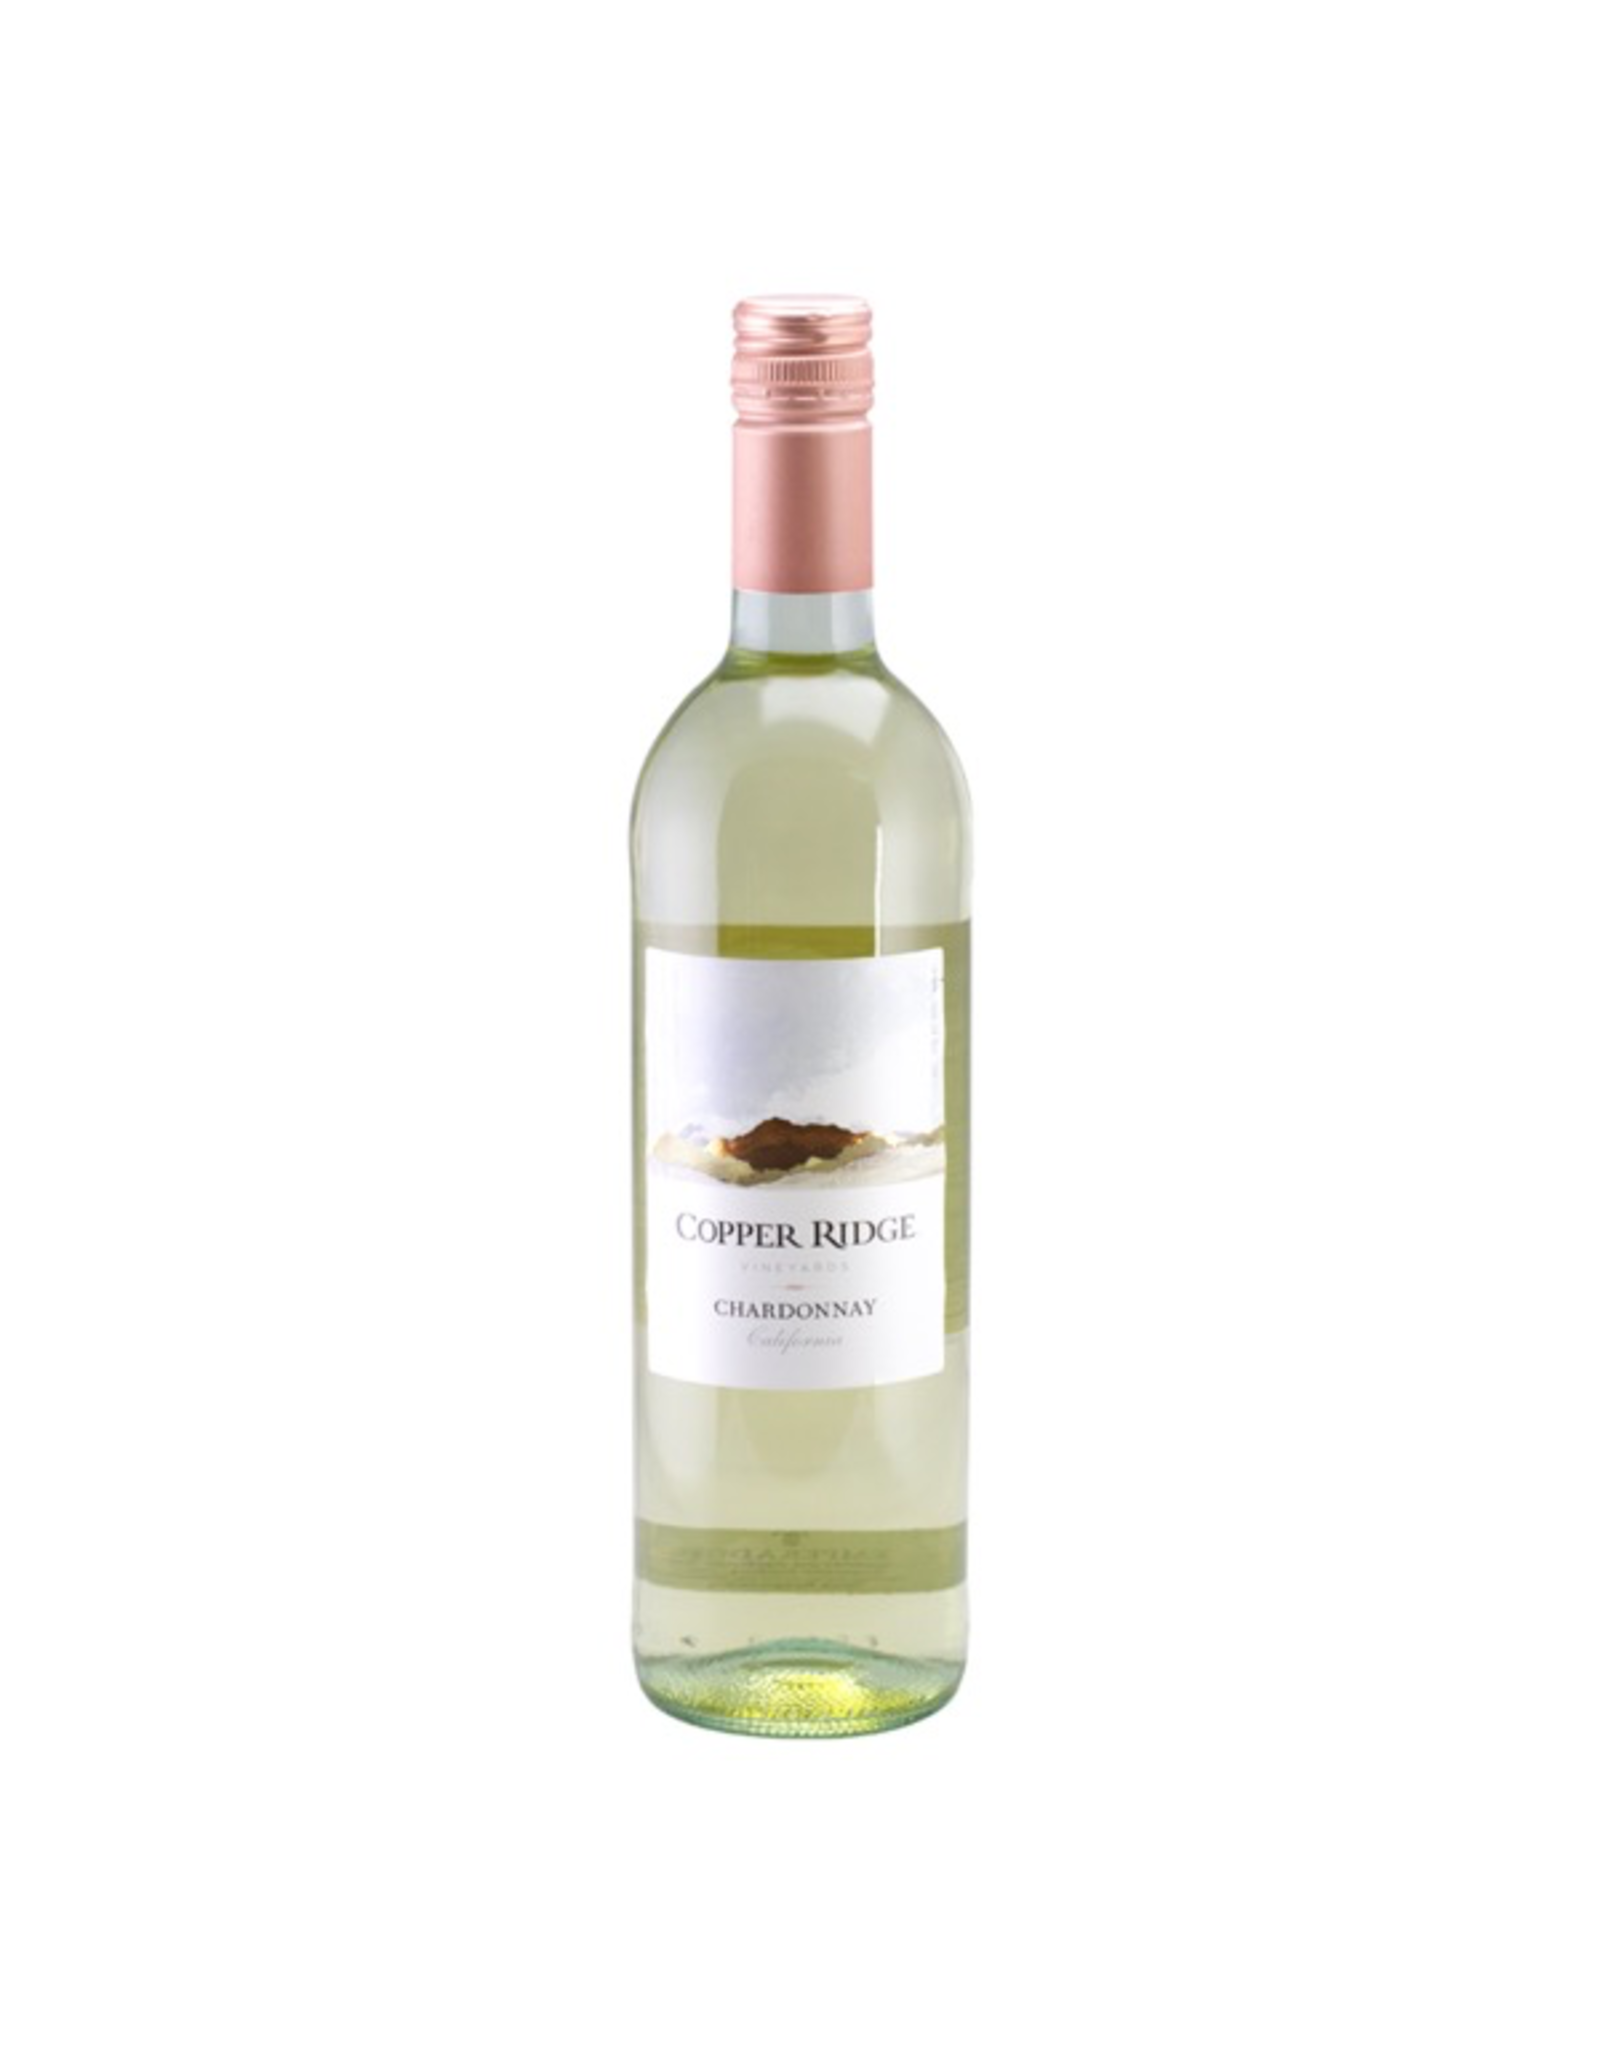 White Wine NV, Copper Ridge Vineyards, Chardonnay, Multi-AVA, Napa, California, 12% Alc, CT83